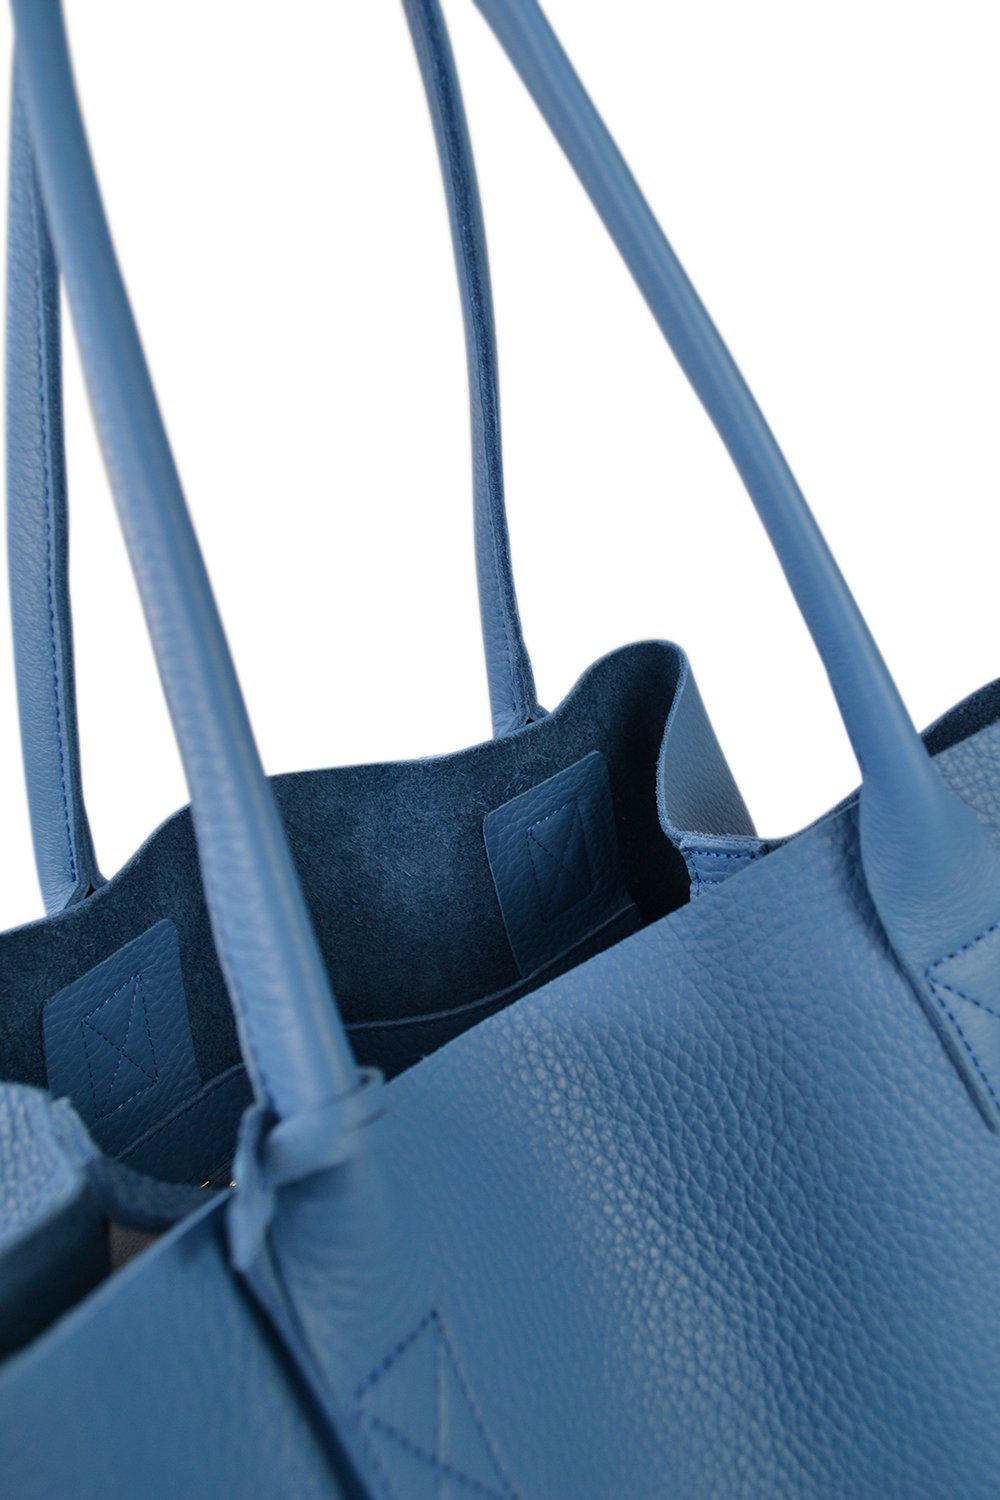 BIRCHGROVE Addison Road Womens Light Blue Genuine Pebbled Leather Tote - BeltNBags